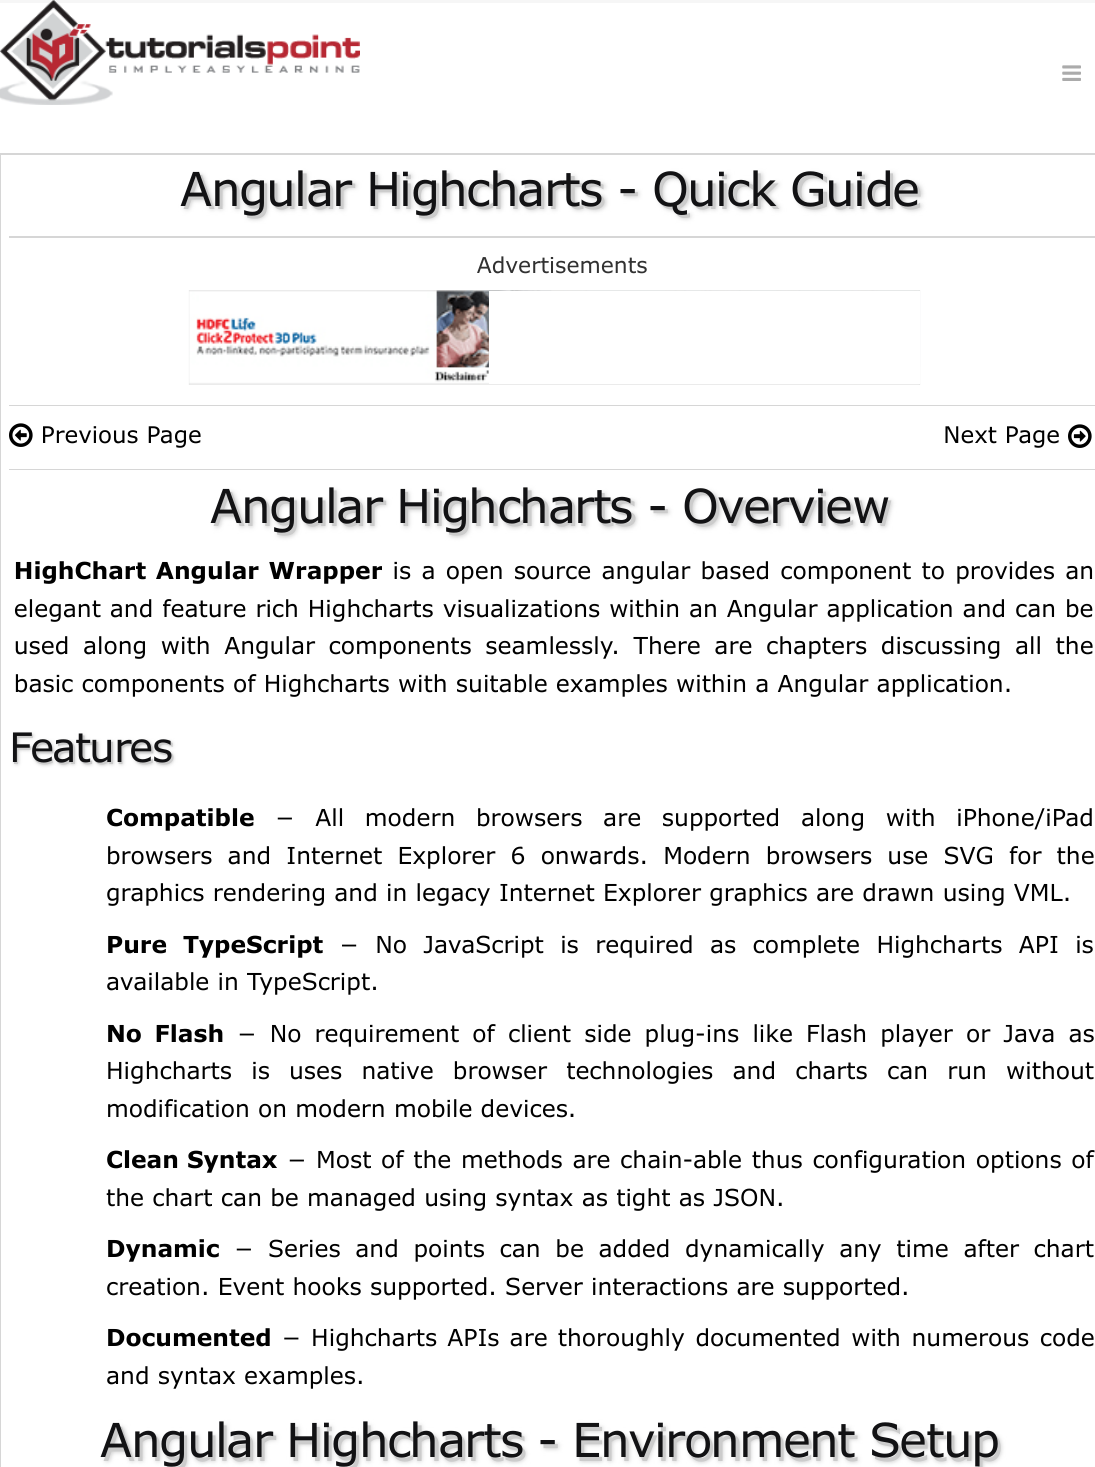 Angular Highcharts Quick Guide